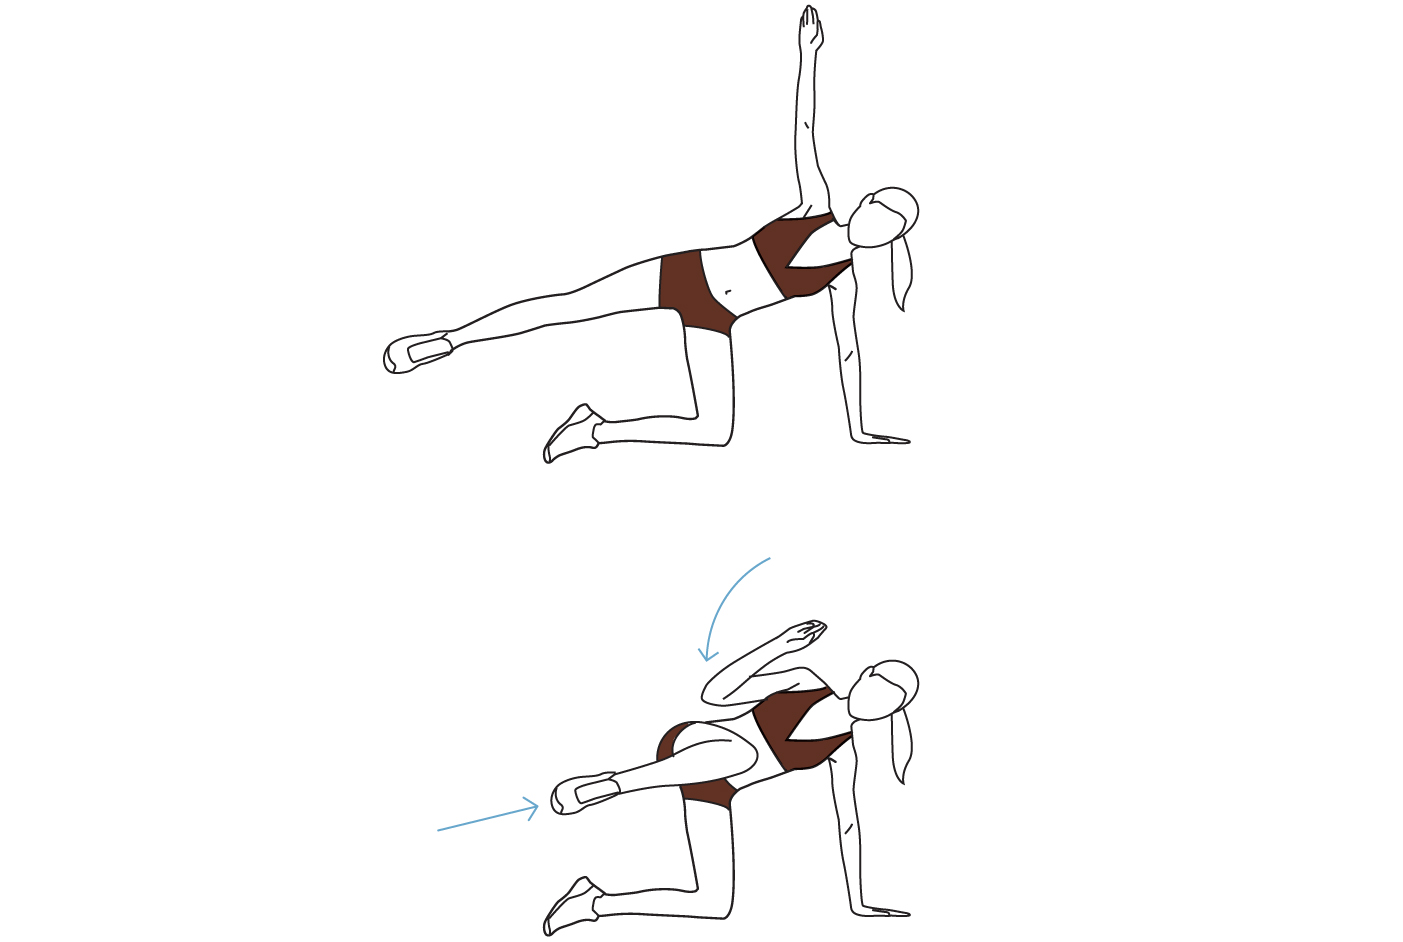 Move 3: Side Balance Crunch